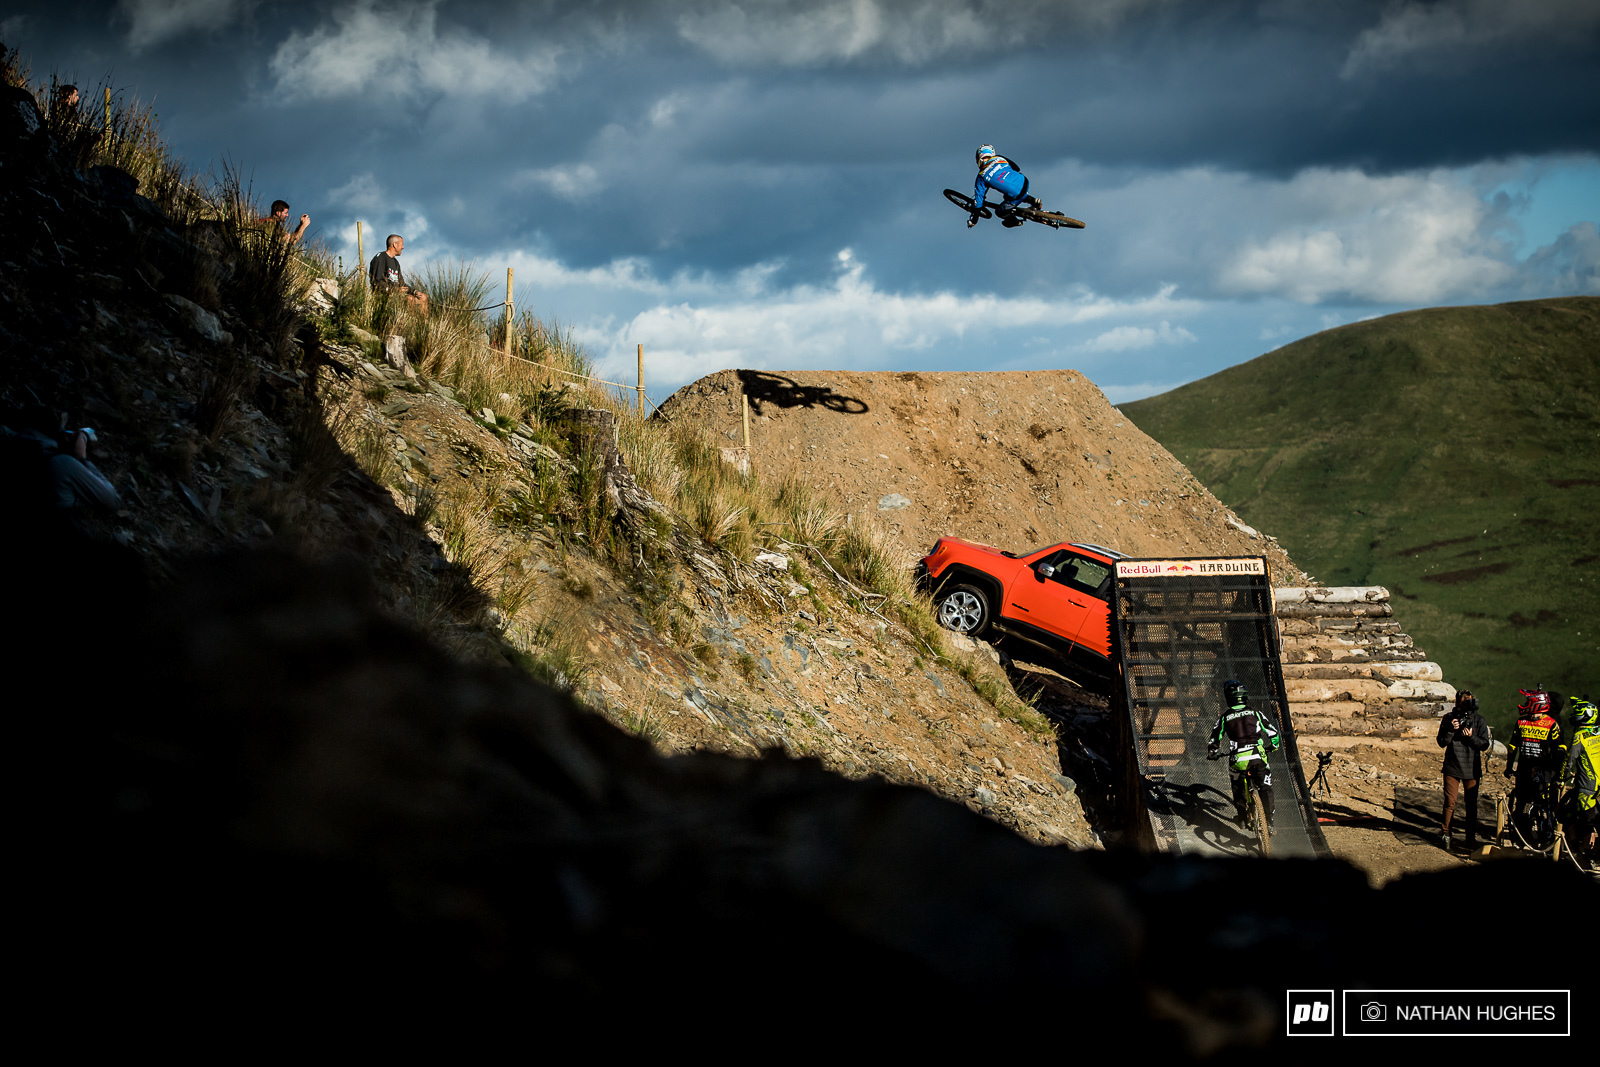 Last year s champ Ruaridh Cunningham showing exactly how the Renegade jump should be boosted.